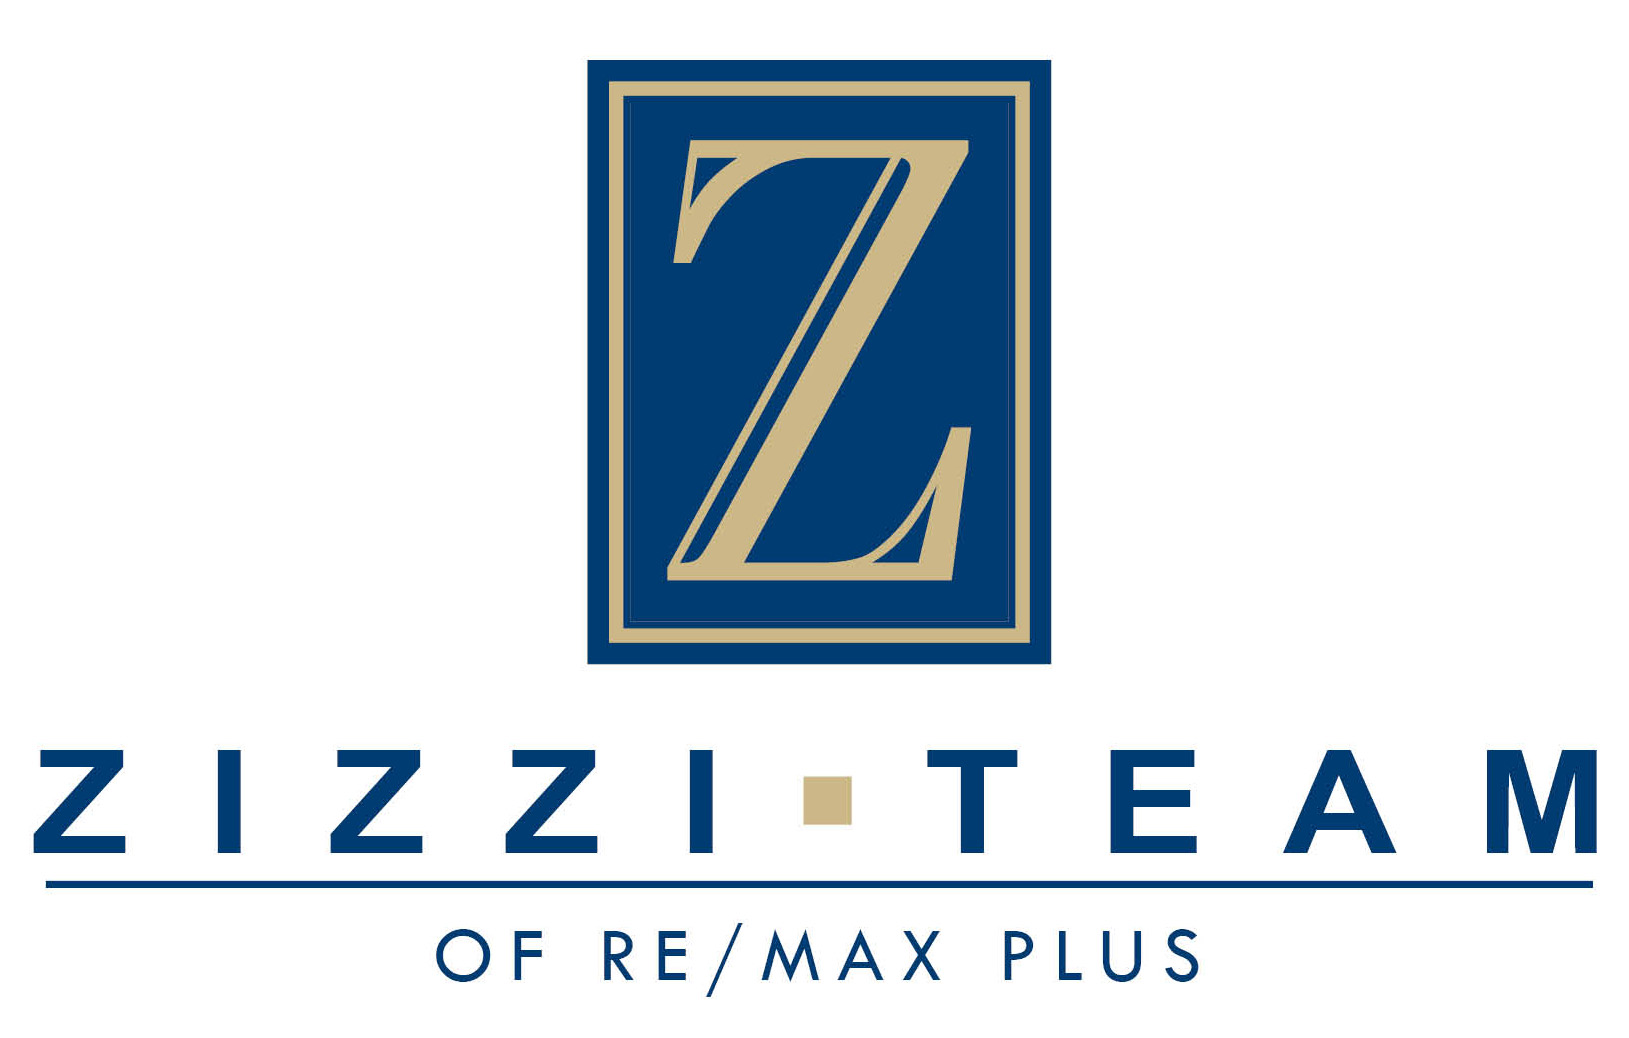 Re/Max Plus- The Zizzi Team